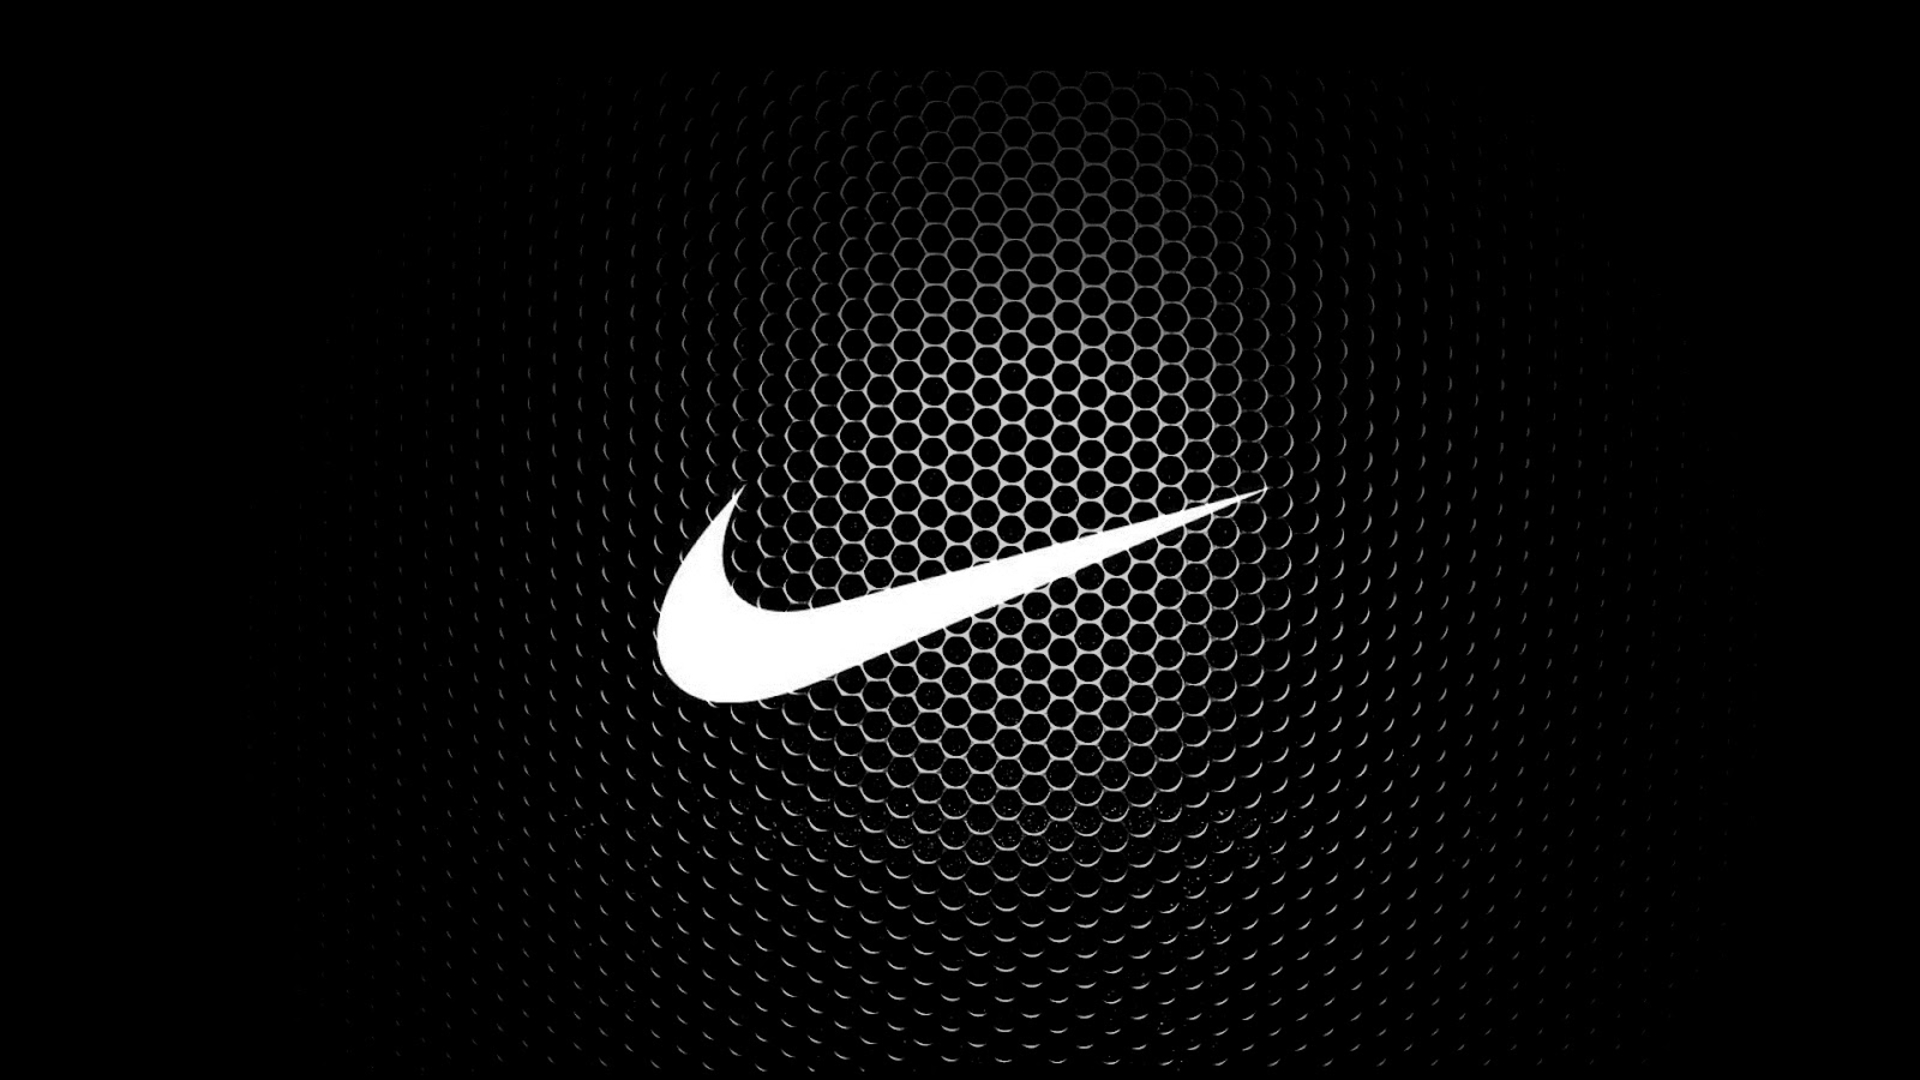 Just do it wallpaper hd page 3 of 3 wallpaper wallpaper cool just do it wallpaper pic voltagebd Choice Image